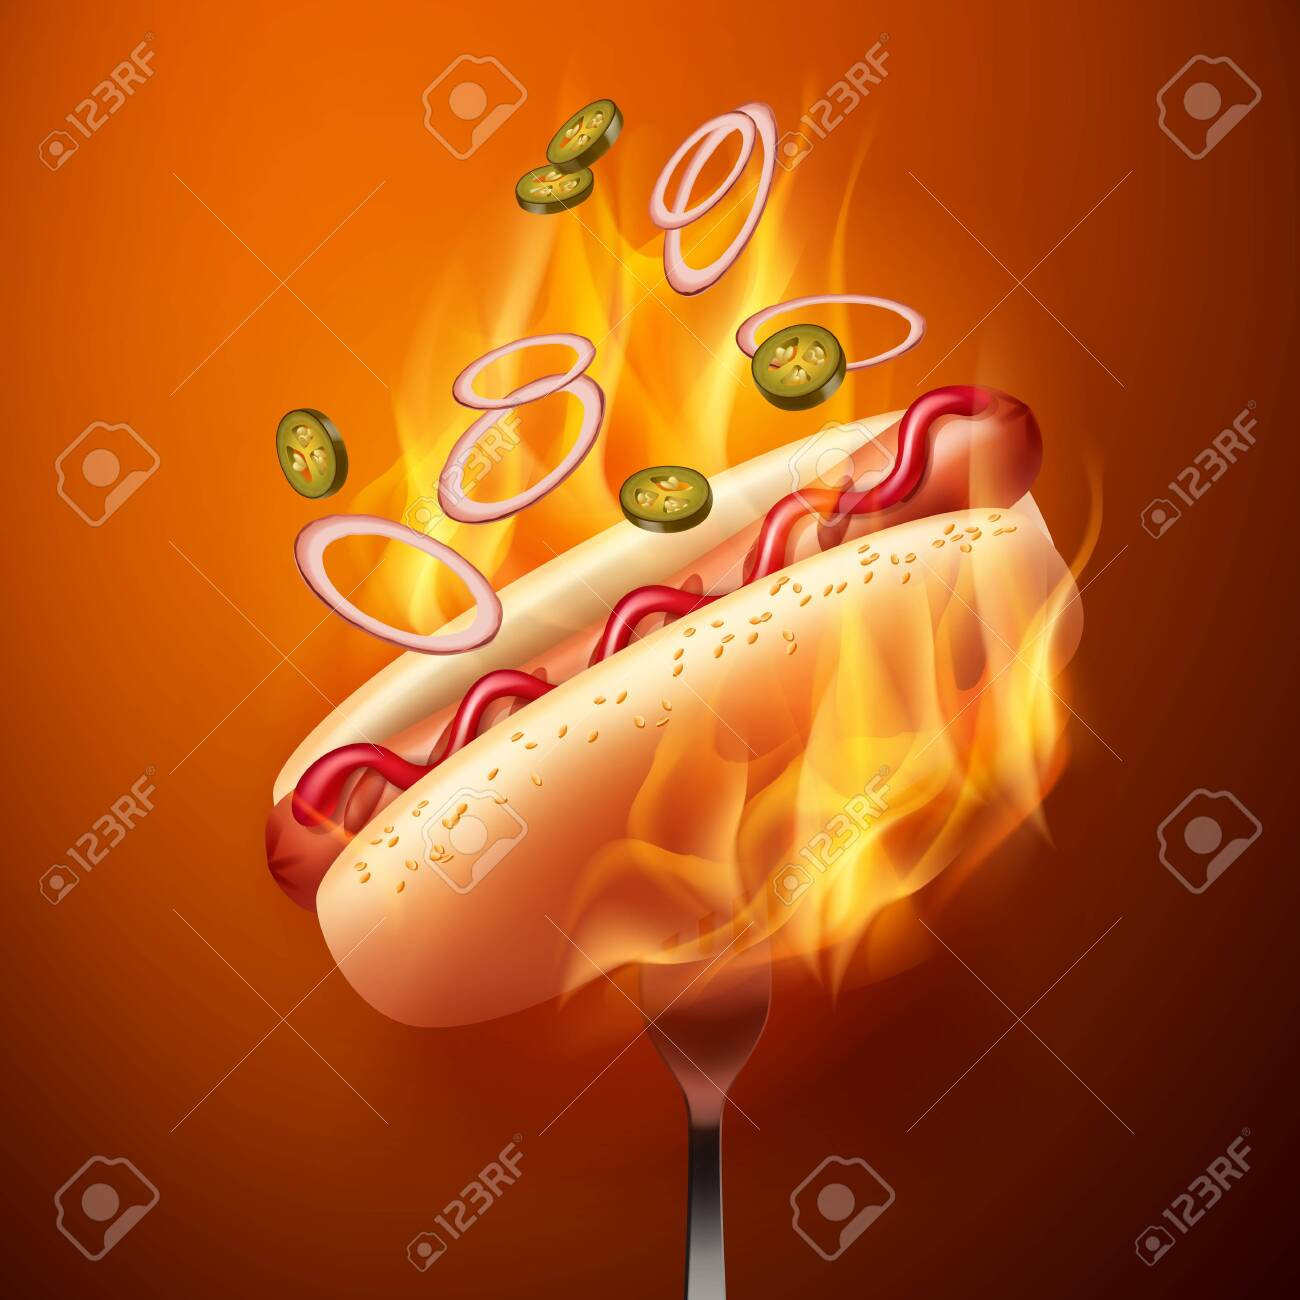 Vector illustration of hot dog with grilled sausage in bun with sesame and falling jalapenos and onion on fork in fire - 119060801